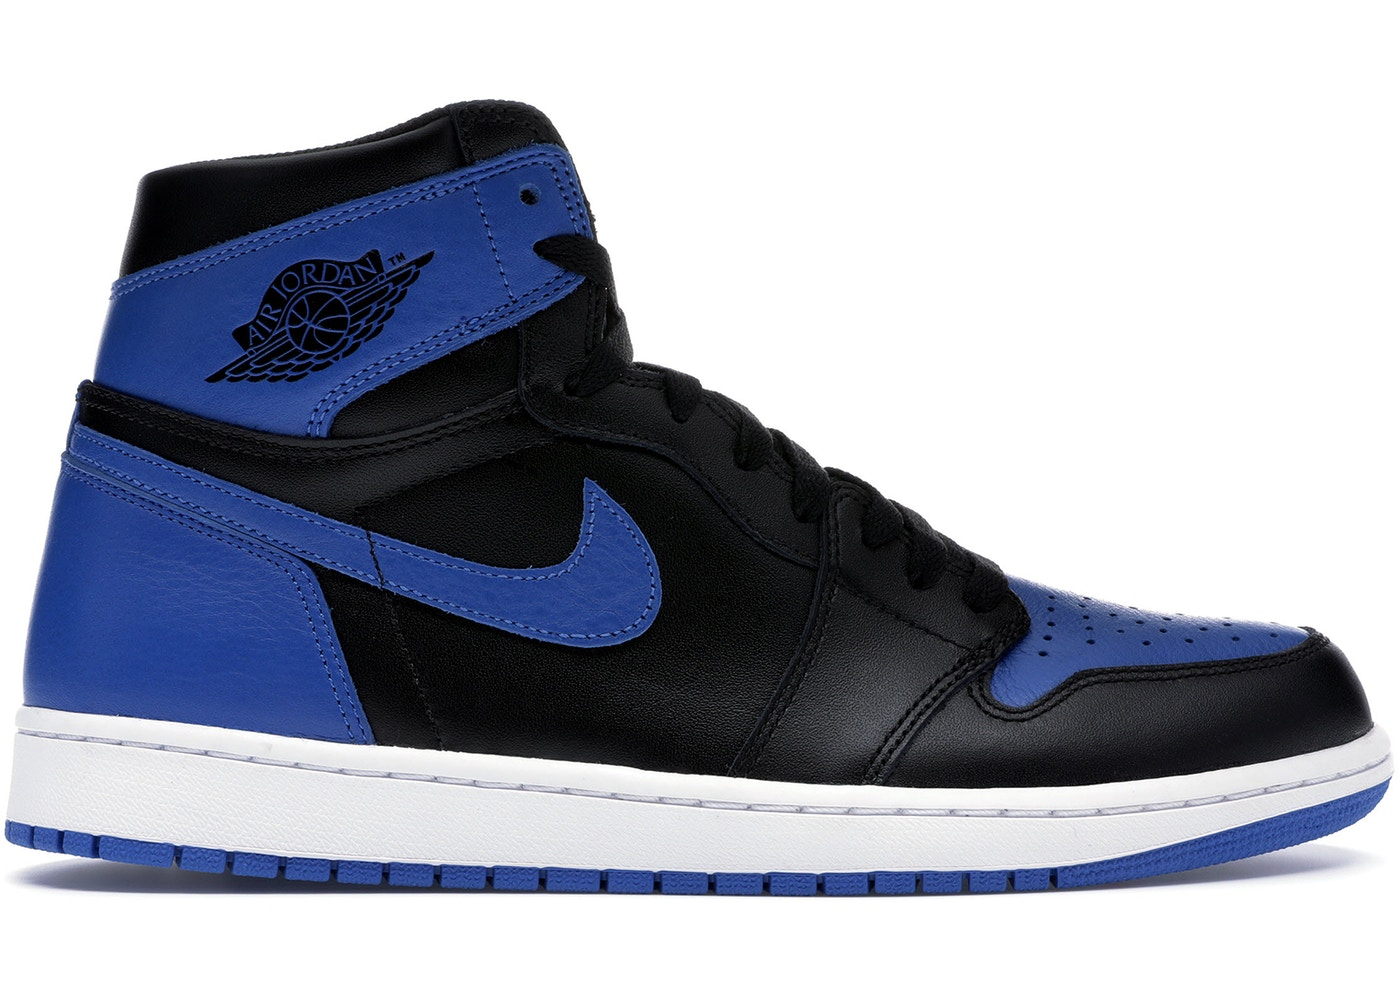 ba093cf9730 Jordan 1 Retro Royal (2017) - 555088-007